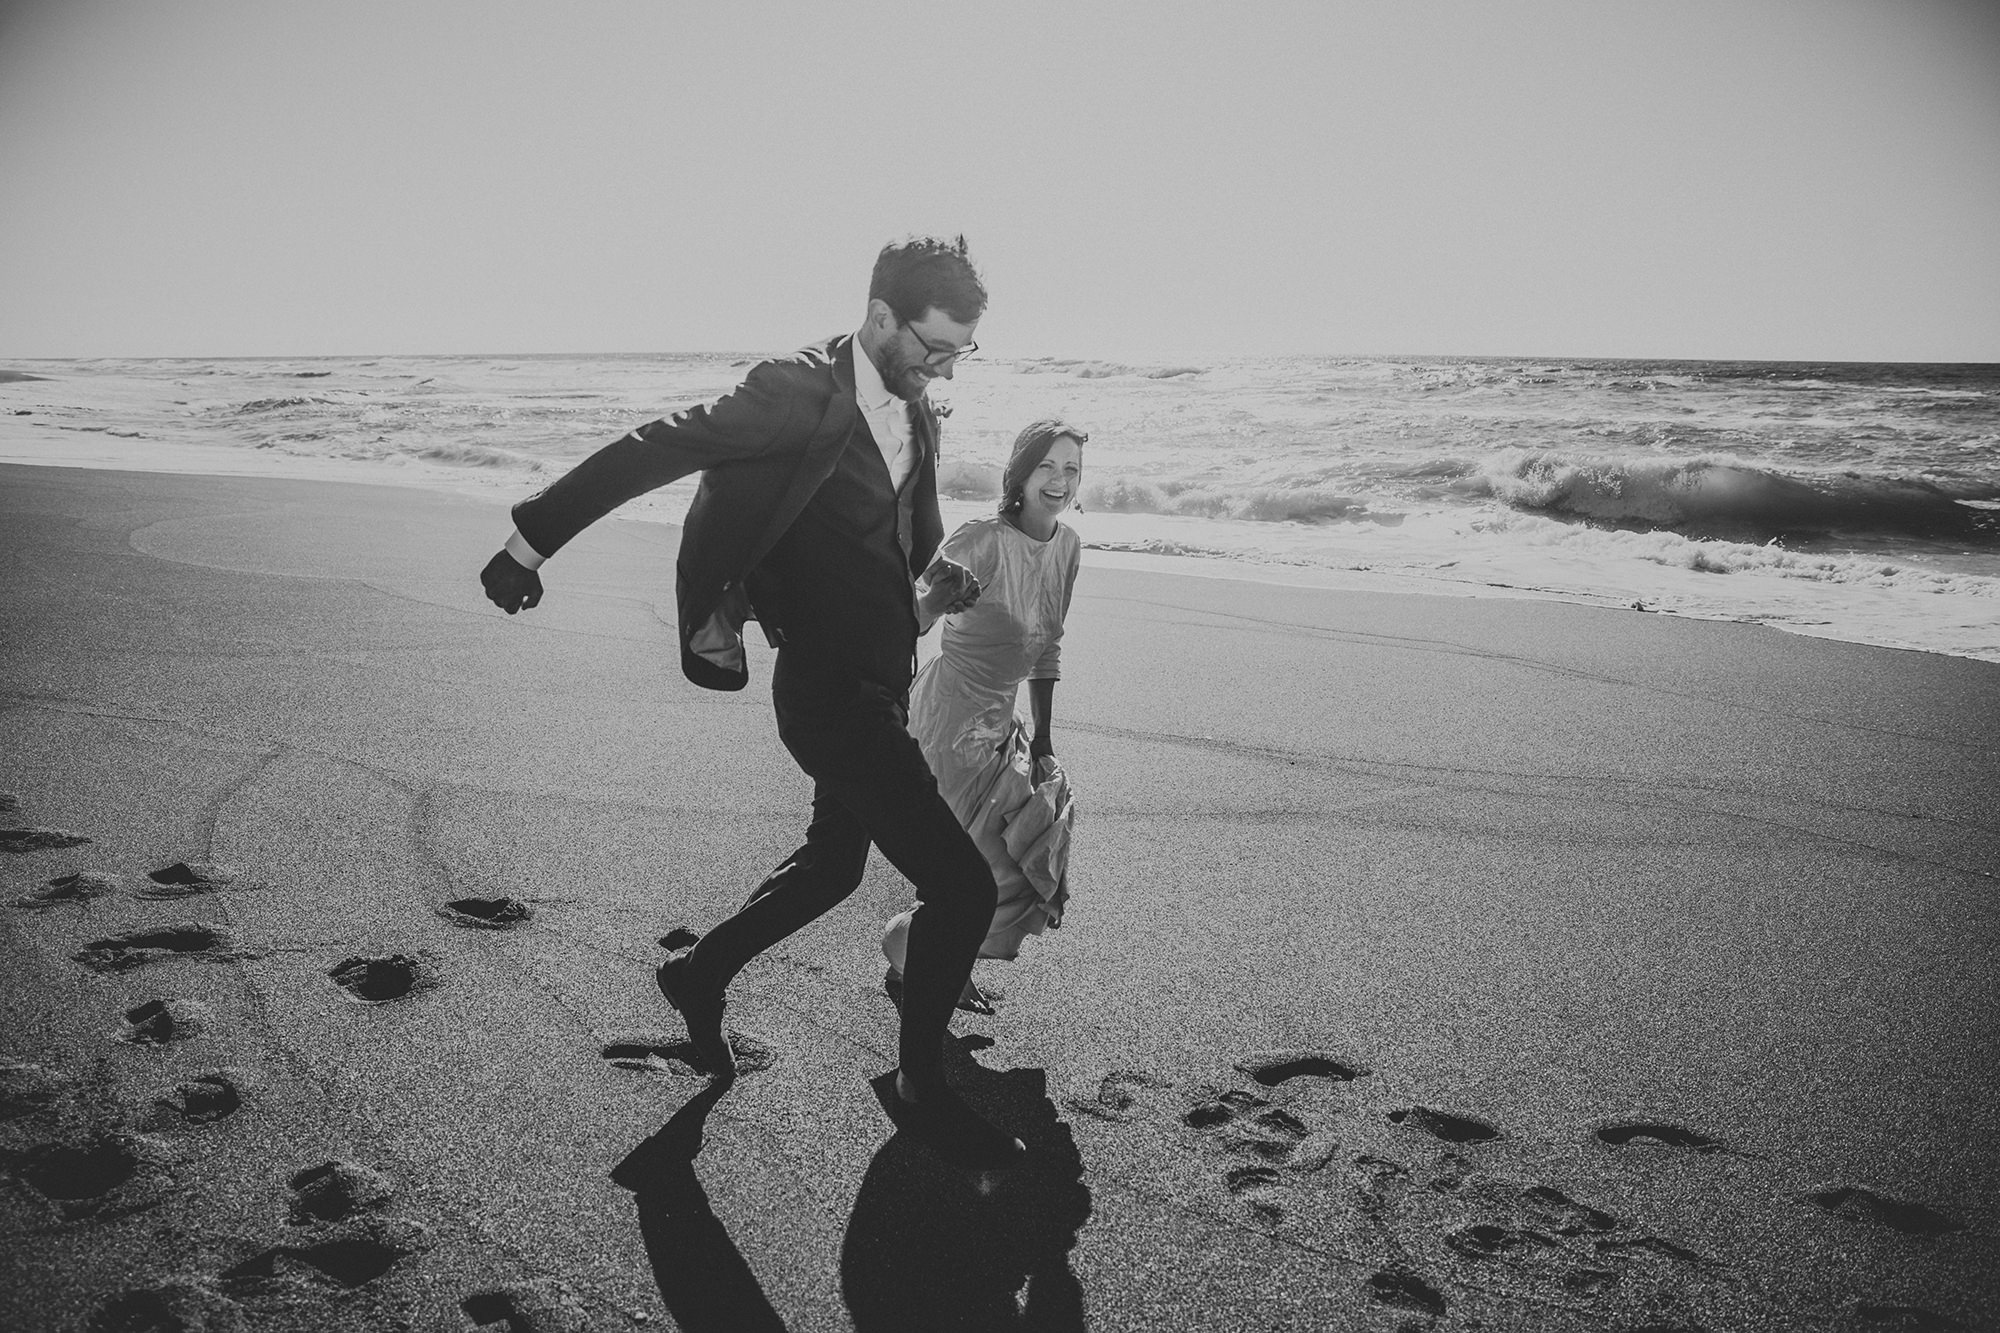 BW photo of bride and groom running on beach for California elopement